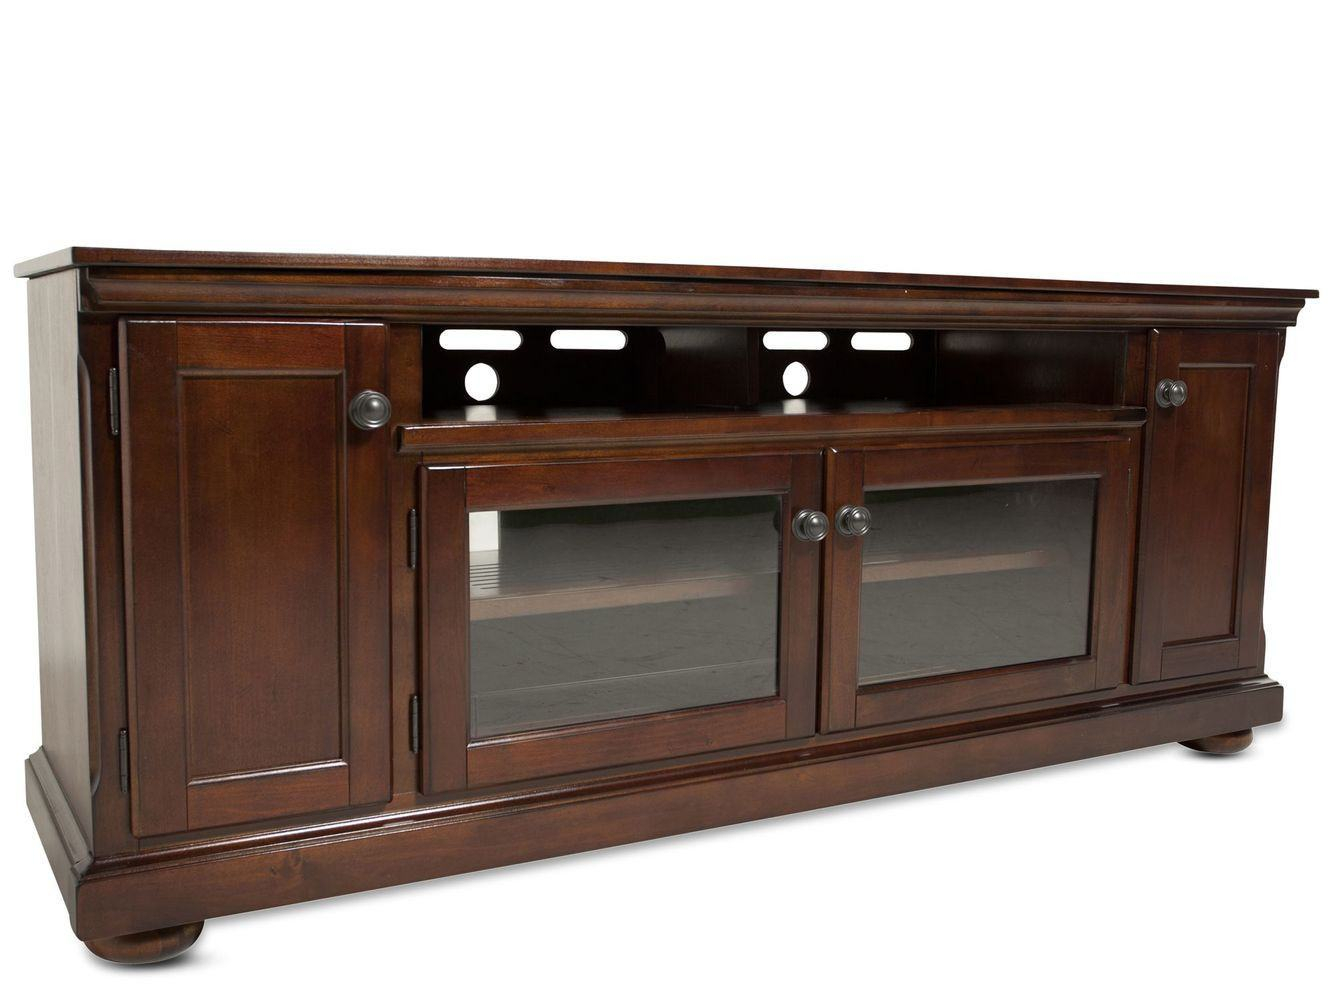 Simple 72 Inch Tv Stand 72 Inch Tv Stand | Cakestandlady pertaining to Walton 72 Inch Tv Stands (Image 18 of 30)